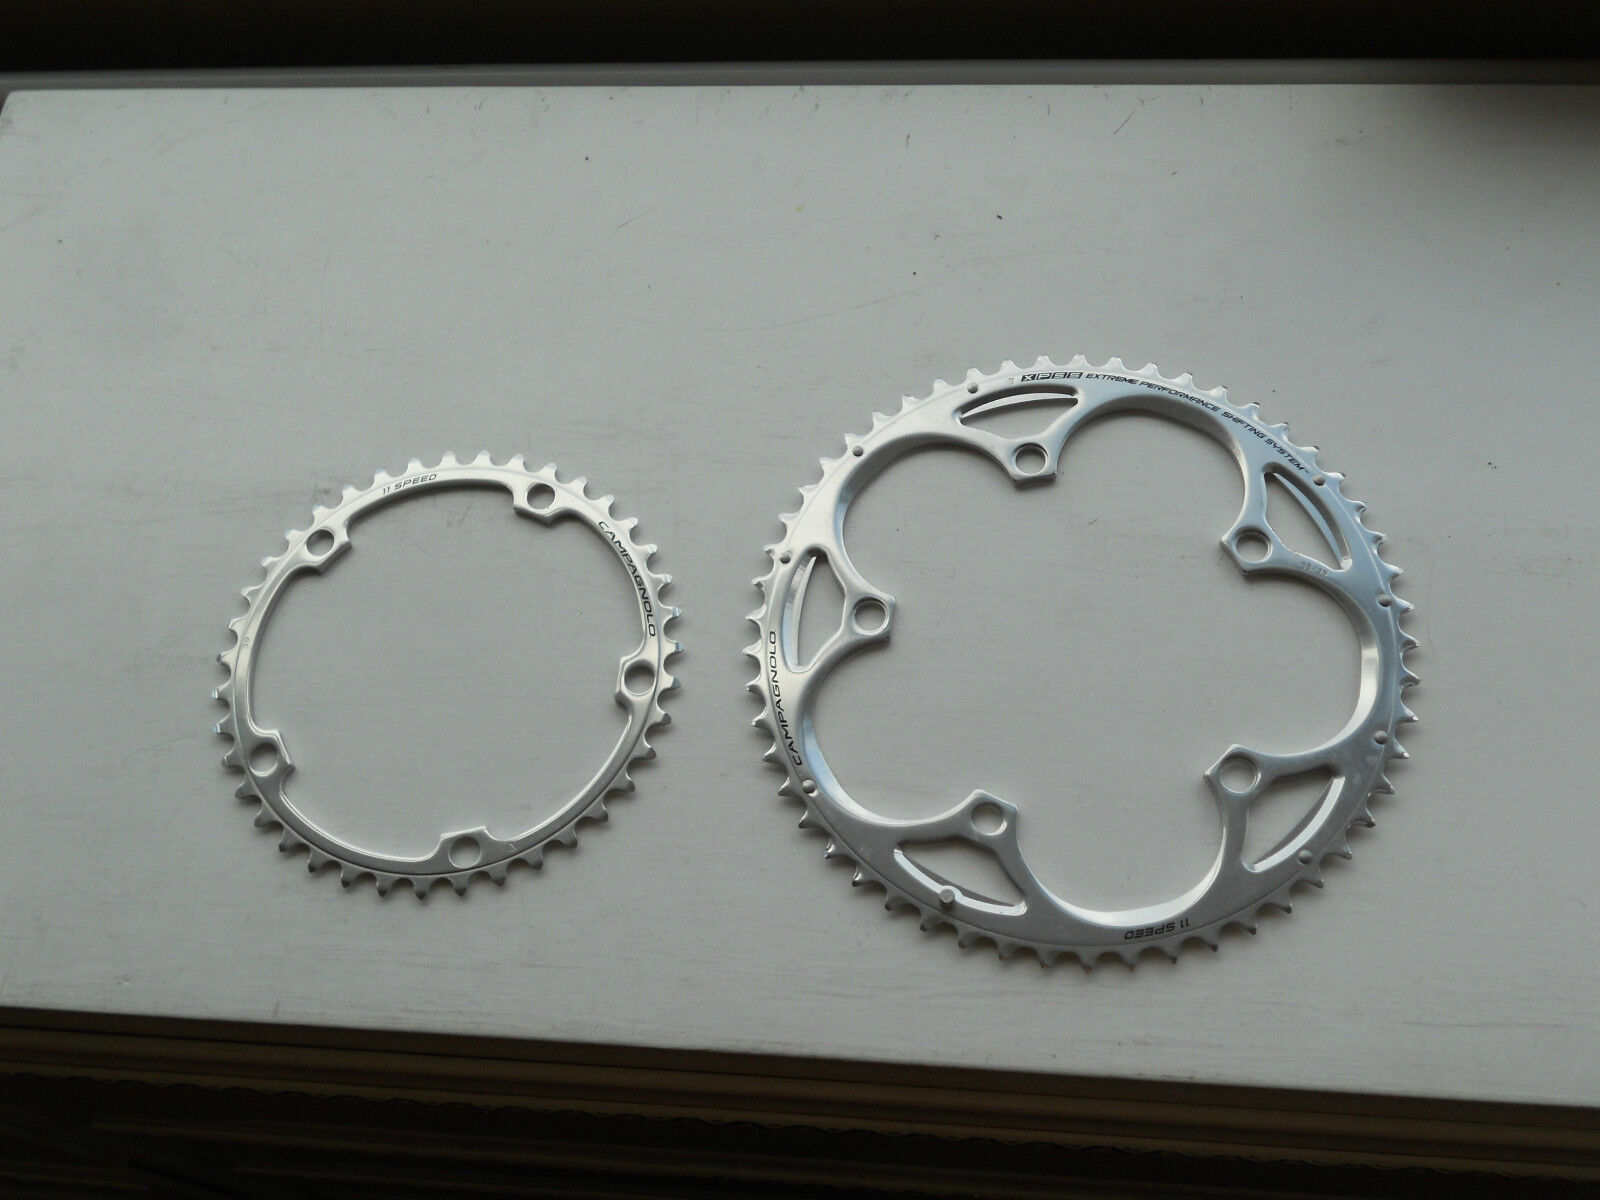 NEW CAMPAGNOLO Athena 11 speed chainring 135bcd 53t 39t XPSS